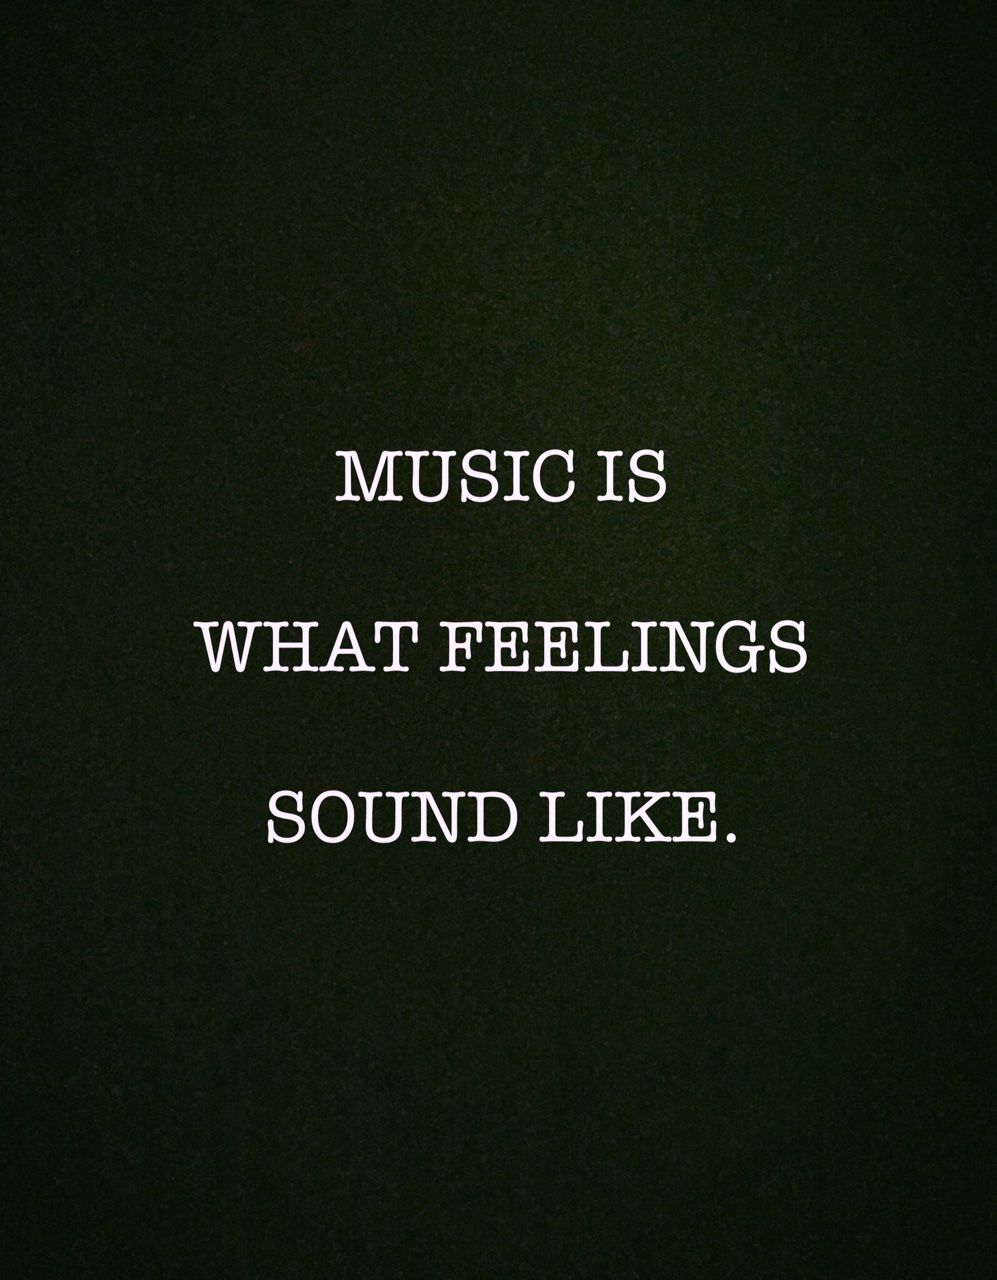 Deep Music Quotes : music, quotes, Music, Quotes, Ideas, Quotes,, Inspirational